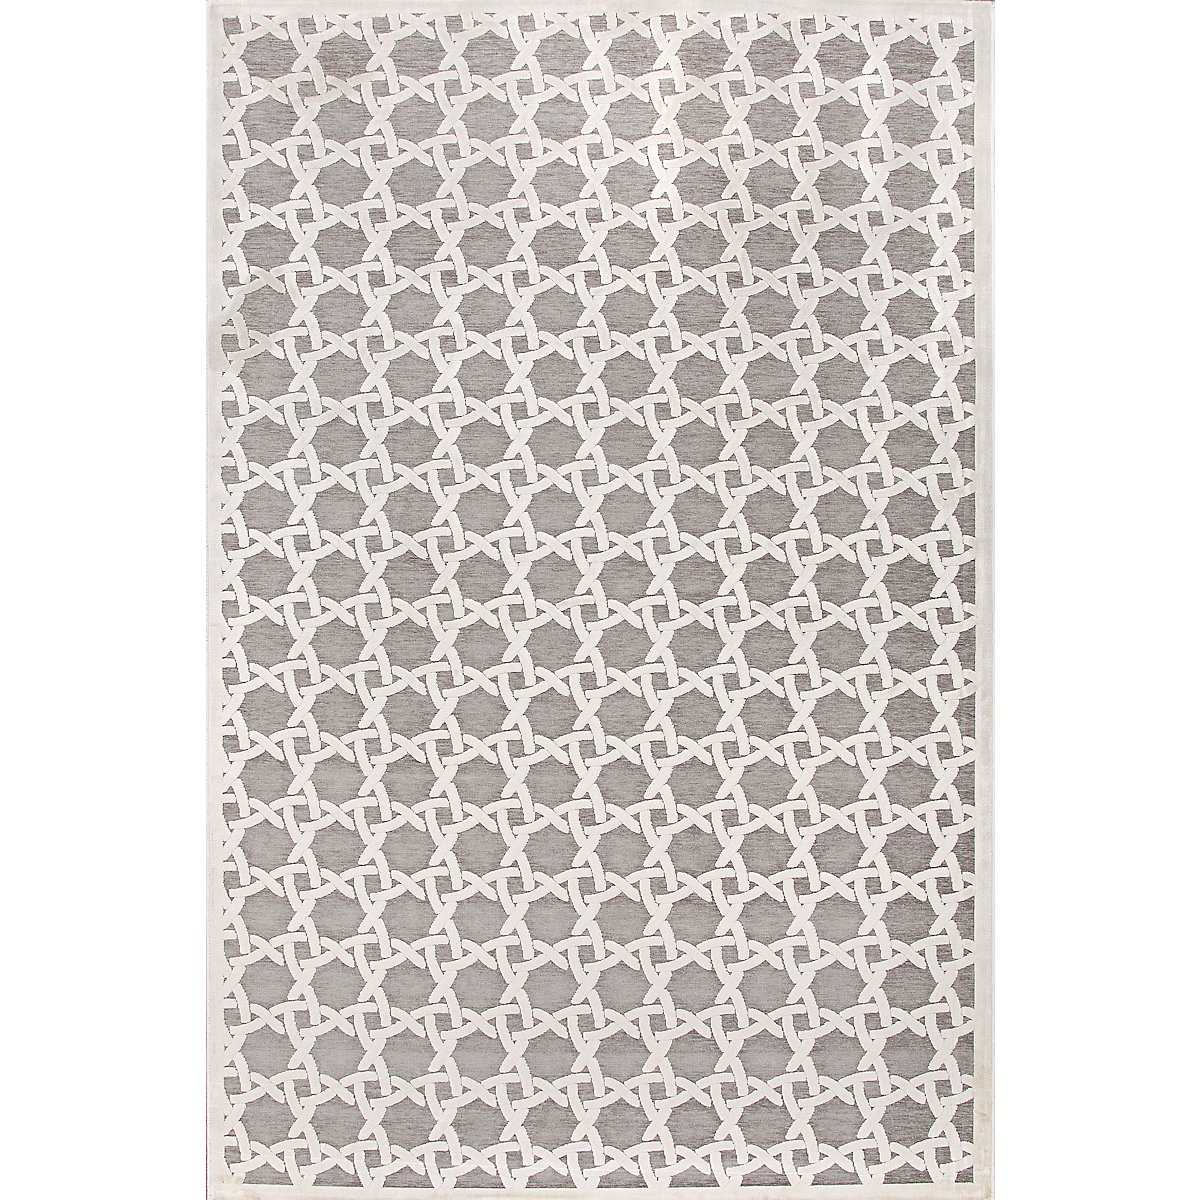 Trella Gray 5X8 Area Rug